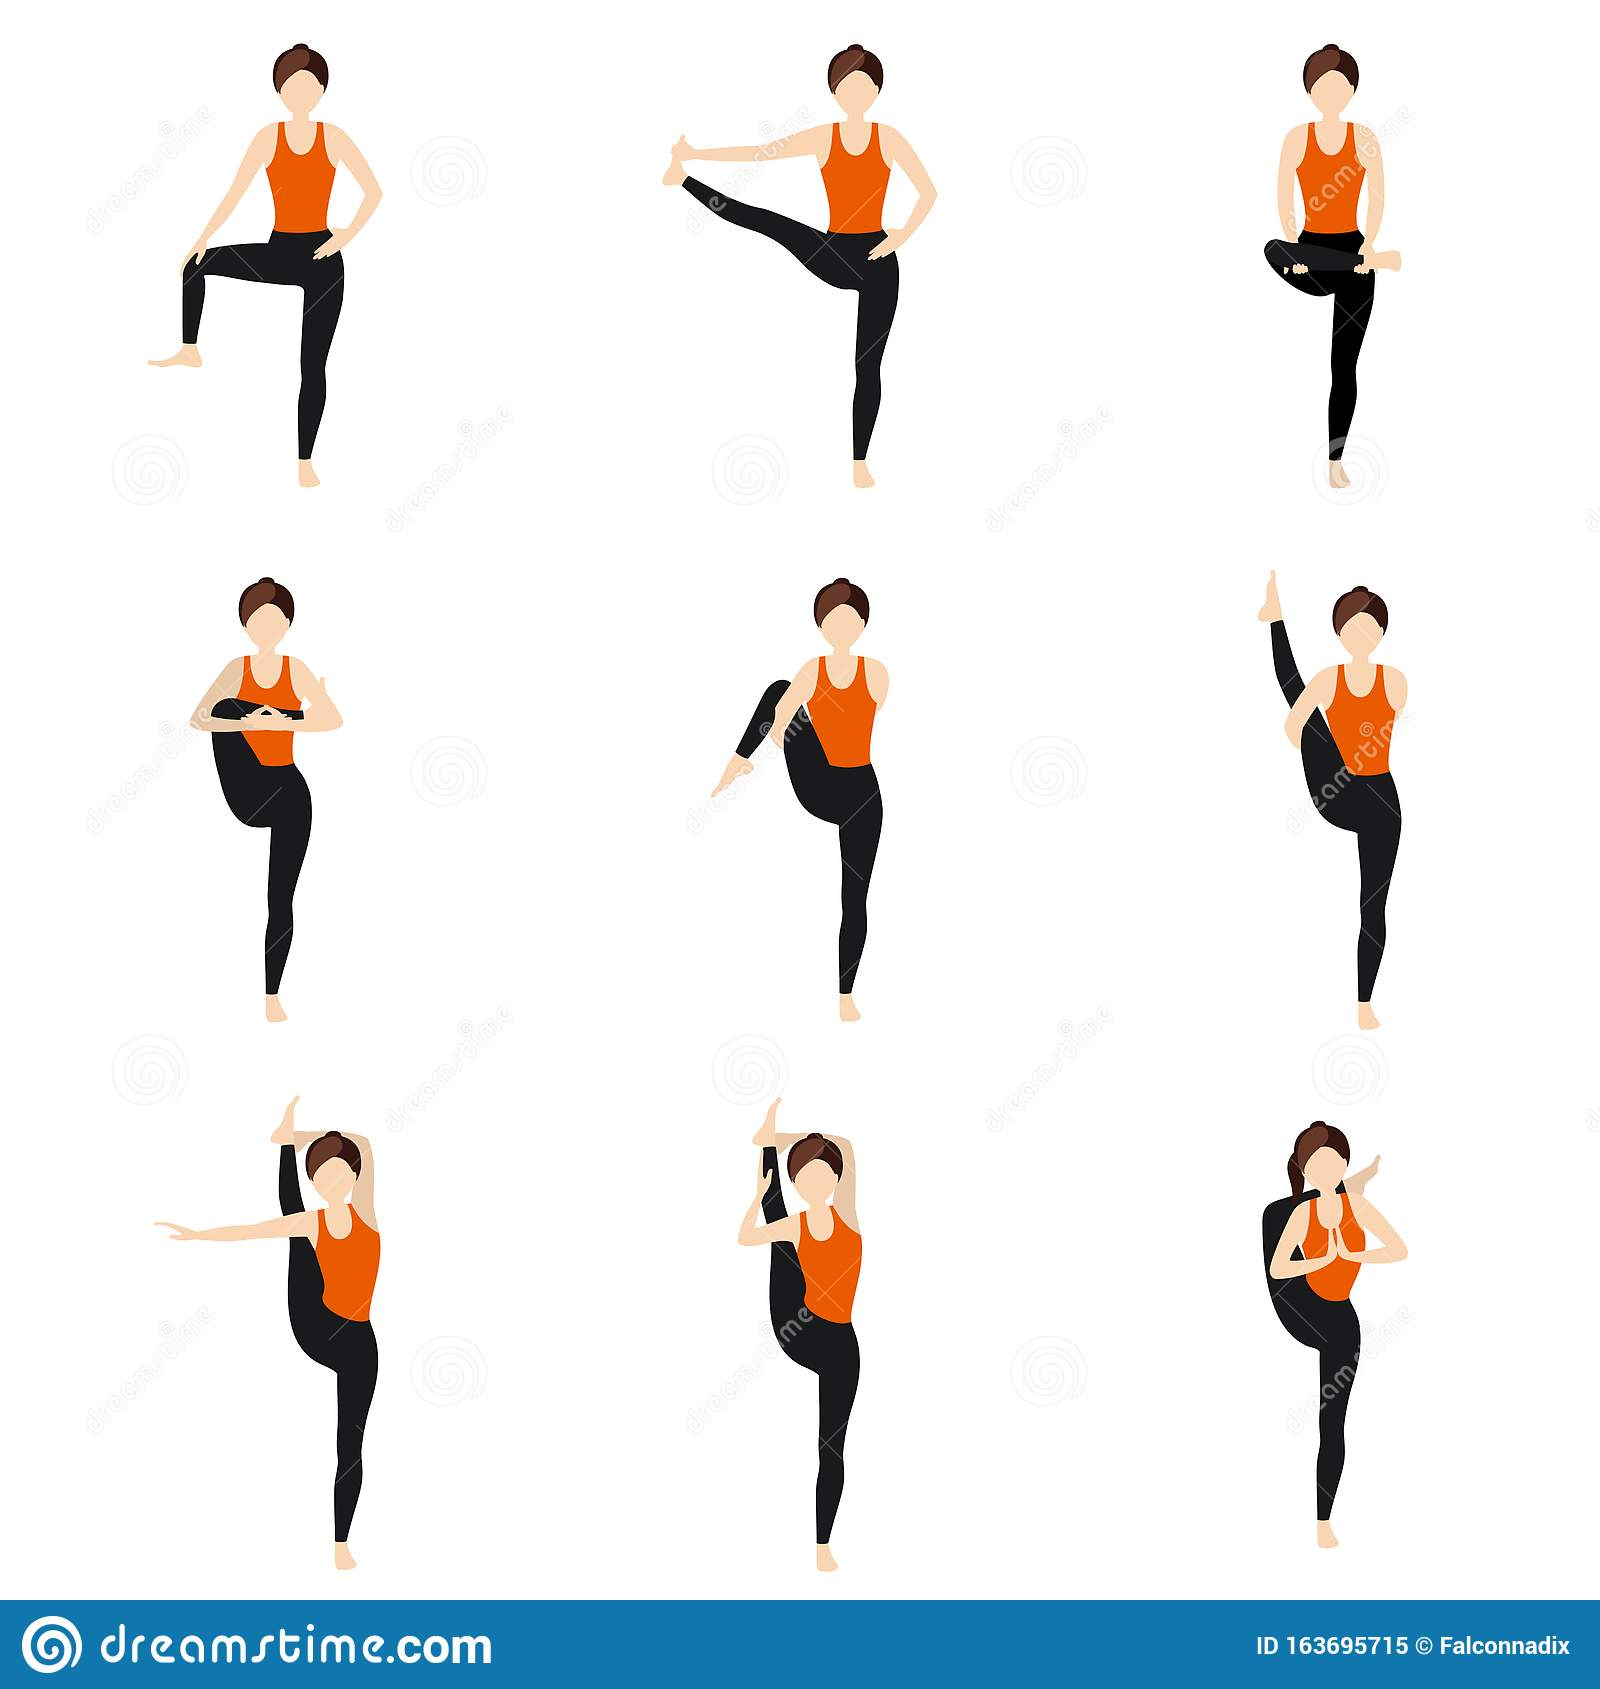 Hips Stretching Standing Yoga Asanas Set Stock Vector Illustration Of Dvijasana Hatha 163695715